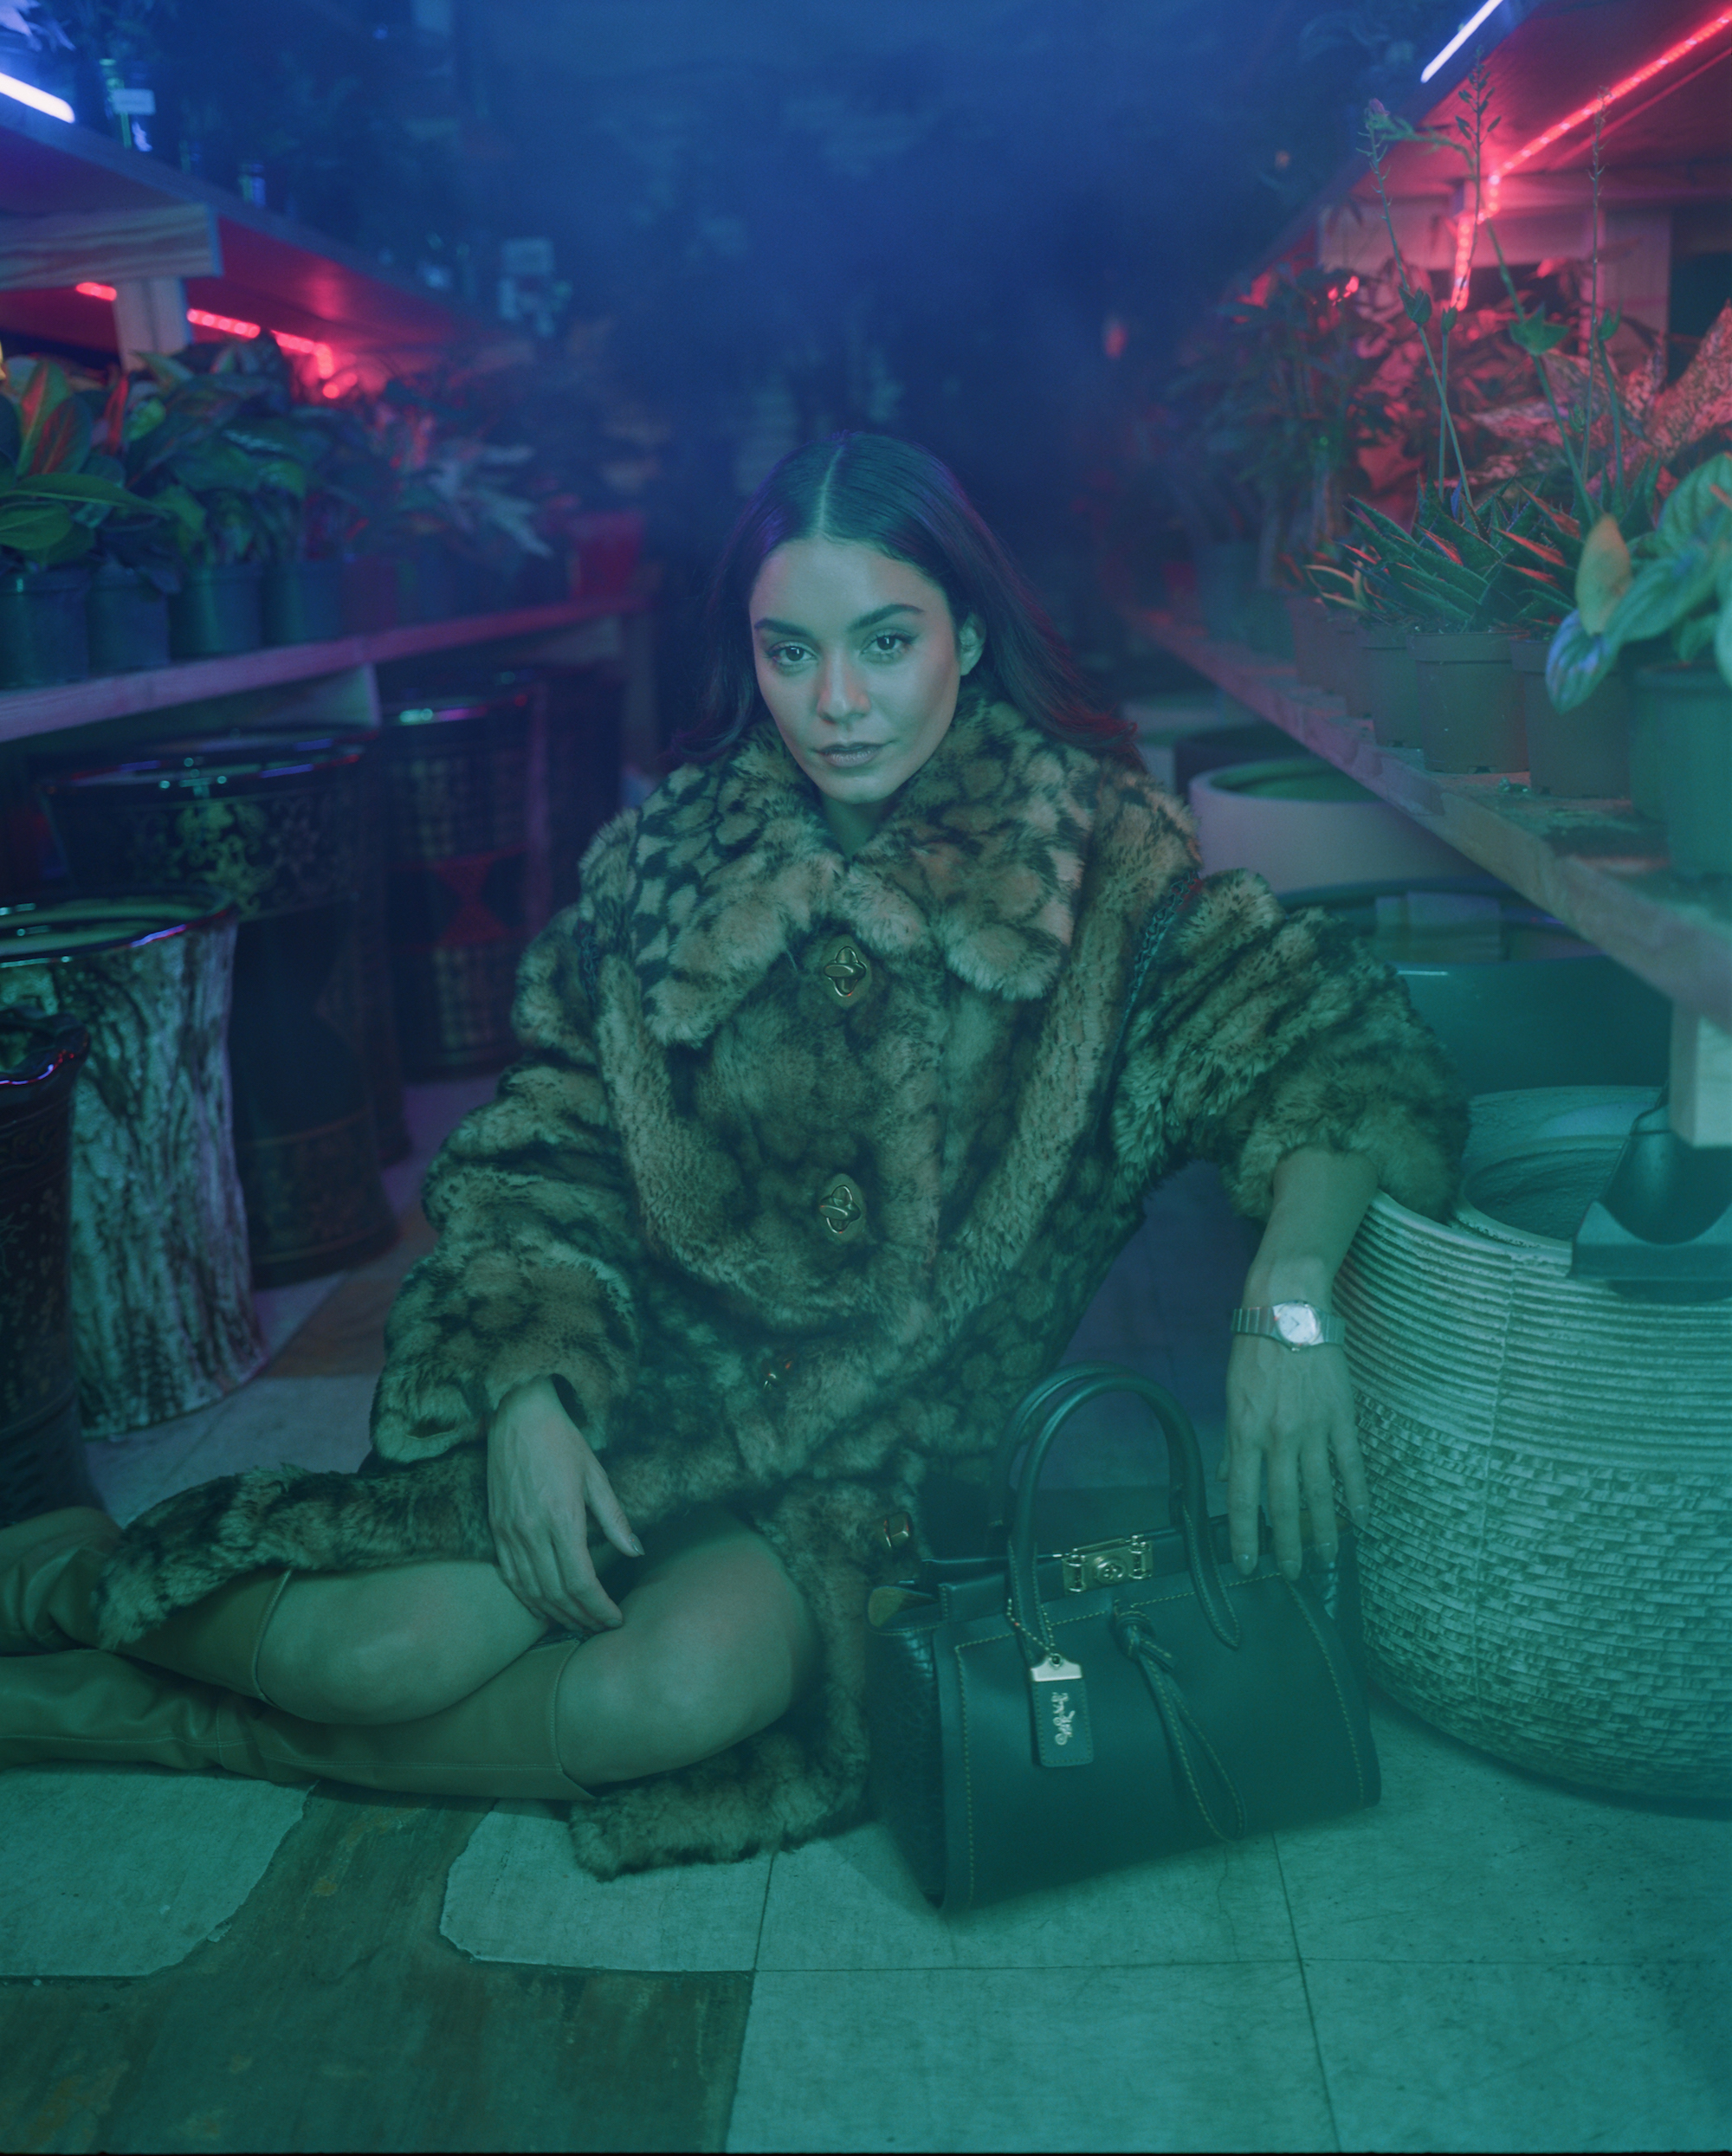 Vanessa Hudgens Omega cover interview in Sumer 19 issue of Wonderland sitting down